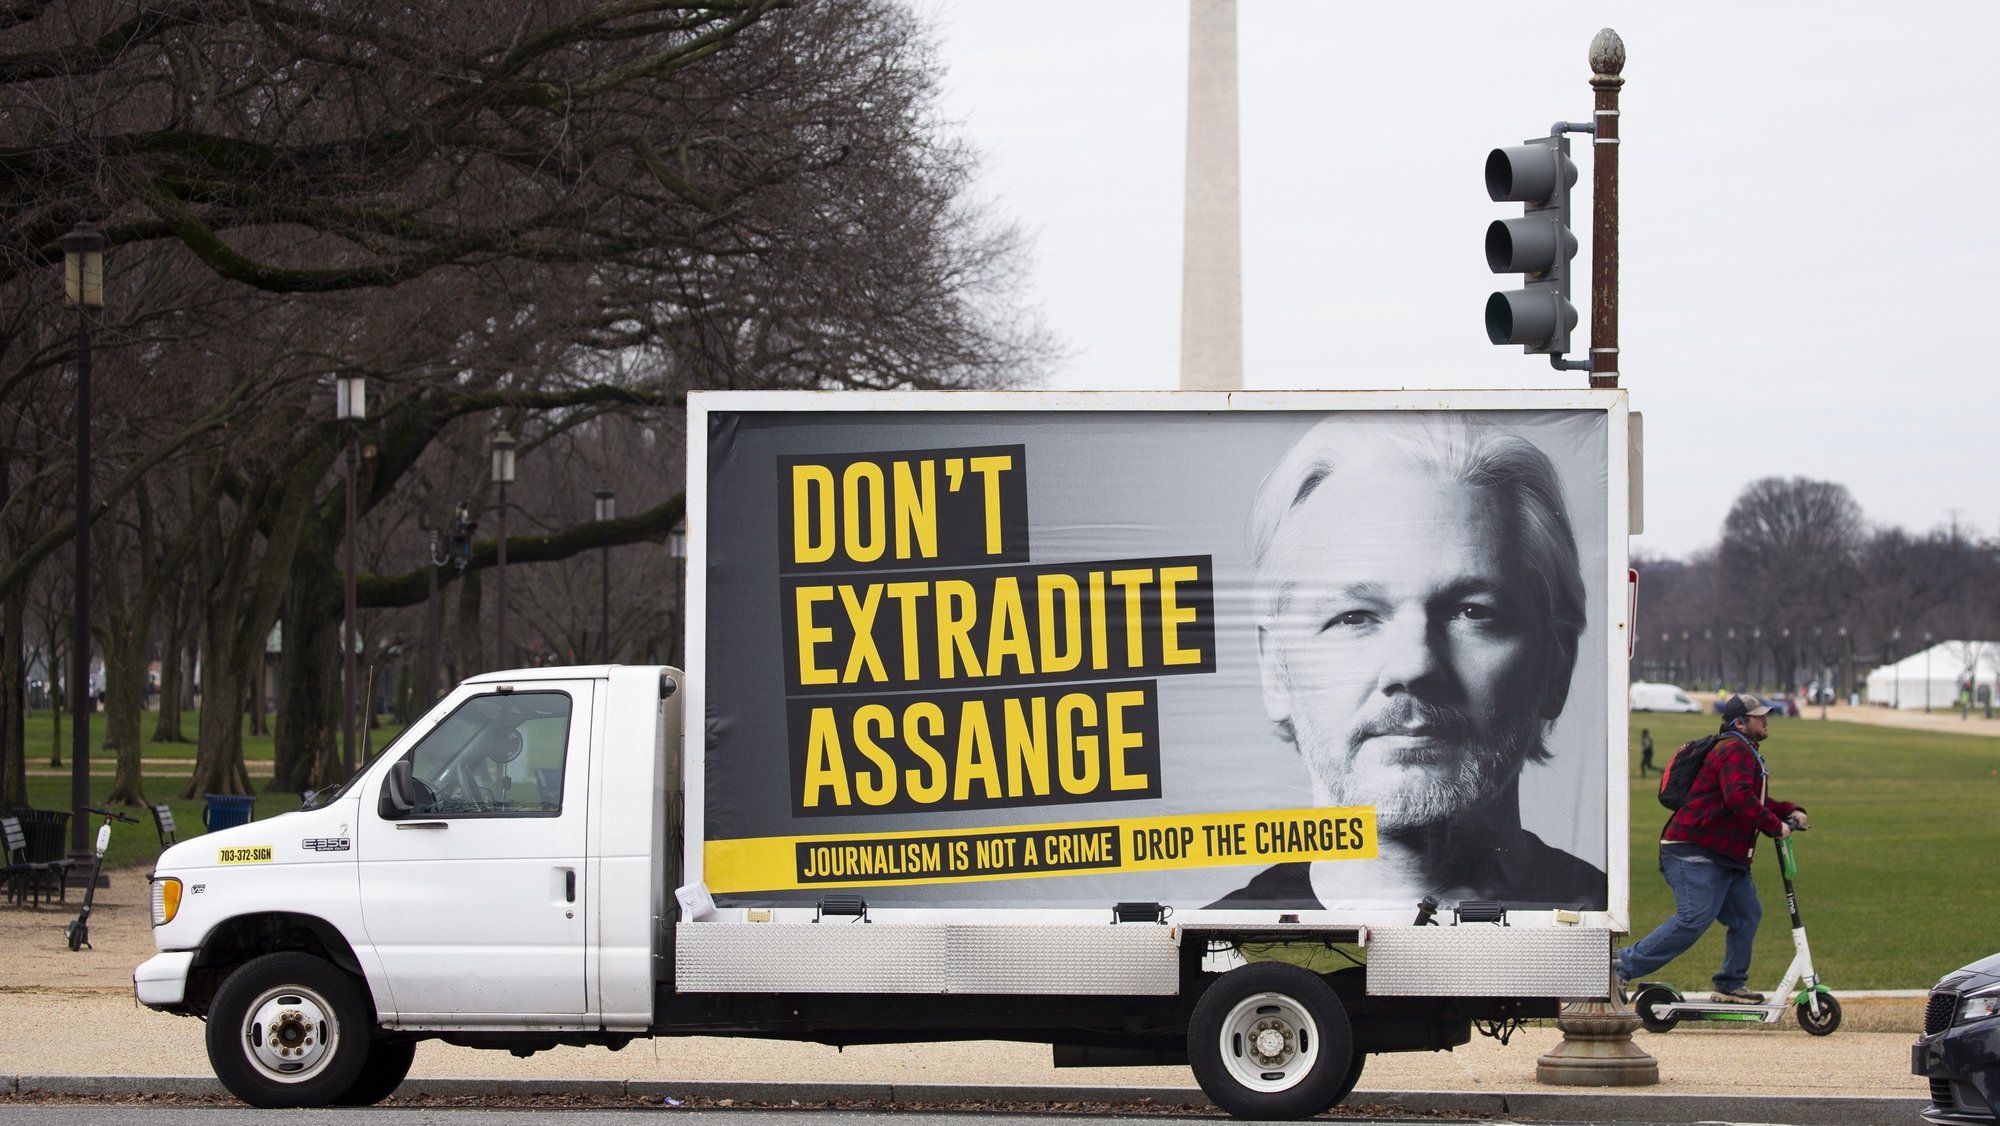 epa08919201 A sign on a truck with the image of WikiLeaks founder Julian Assange reads 'Don't Extradite Assange', in the National Mall with the Washington Monument seen behind, in Washington, DC, USA, 04 January 2021. A judge in the United Kingdom turned down a US request to extradite Assange to face charges of espionage. Following the decision Mexico has offered political asylum to Assange.  EPA/MICHAEL REYNOLDS